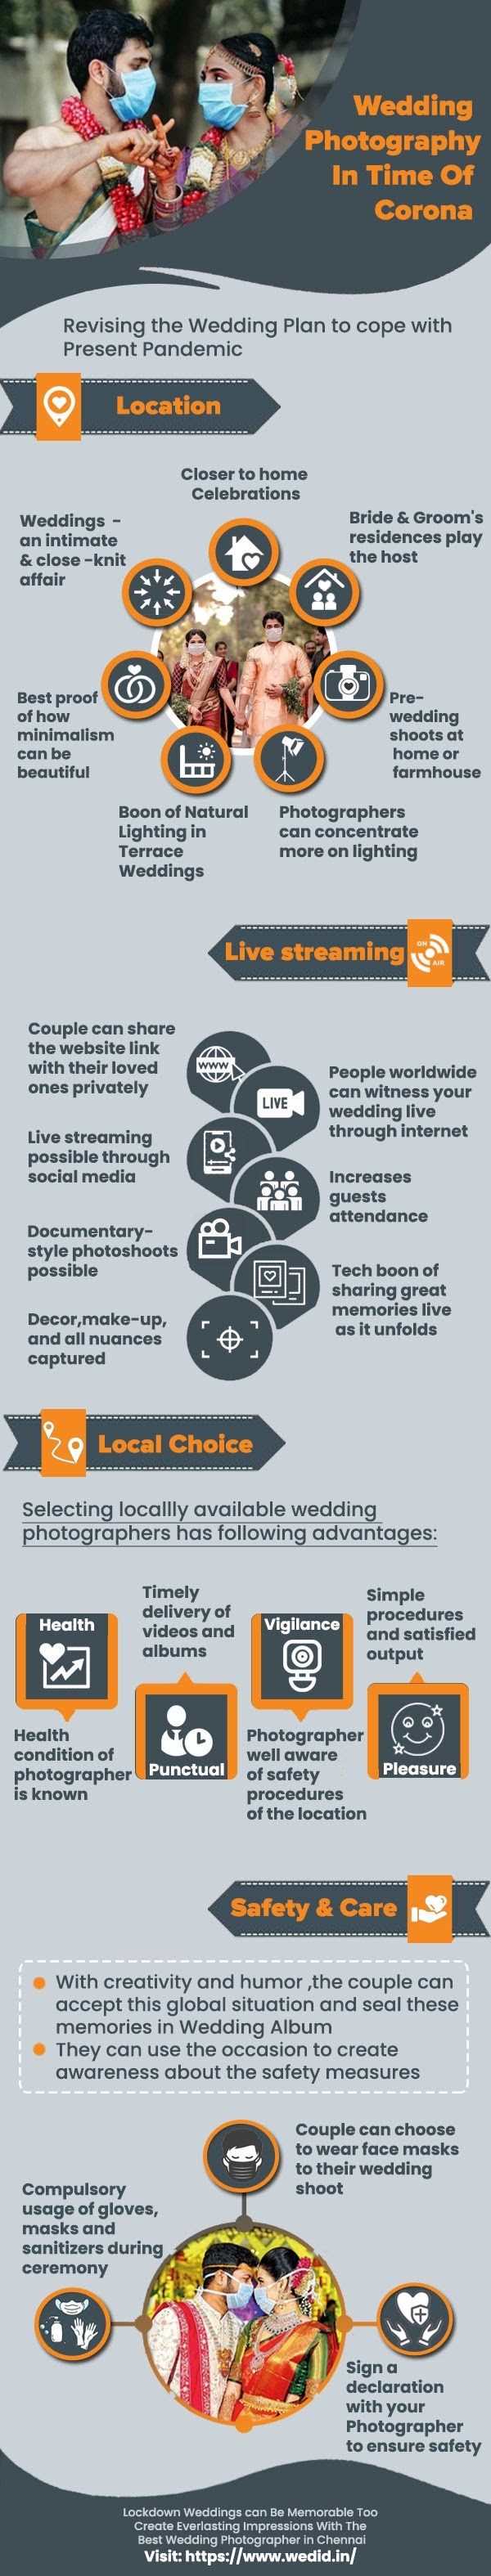 Wedding Photography In The Time of Coronavirus #infographic